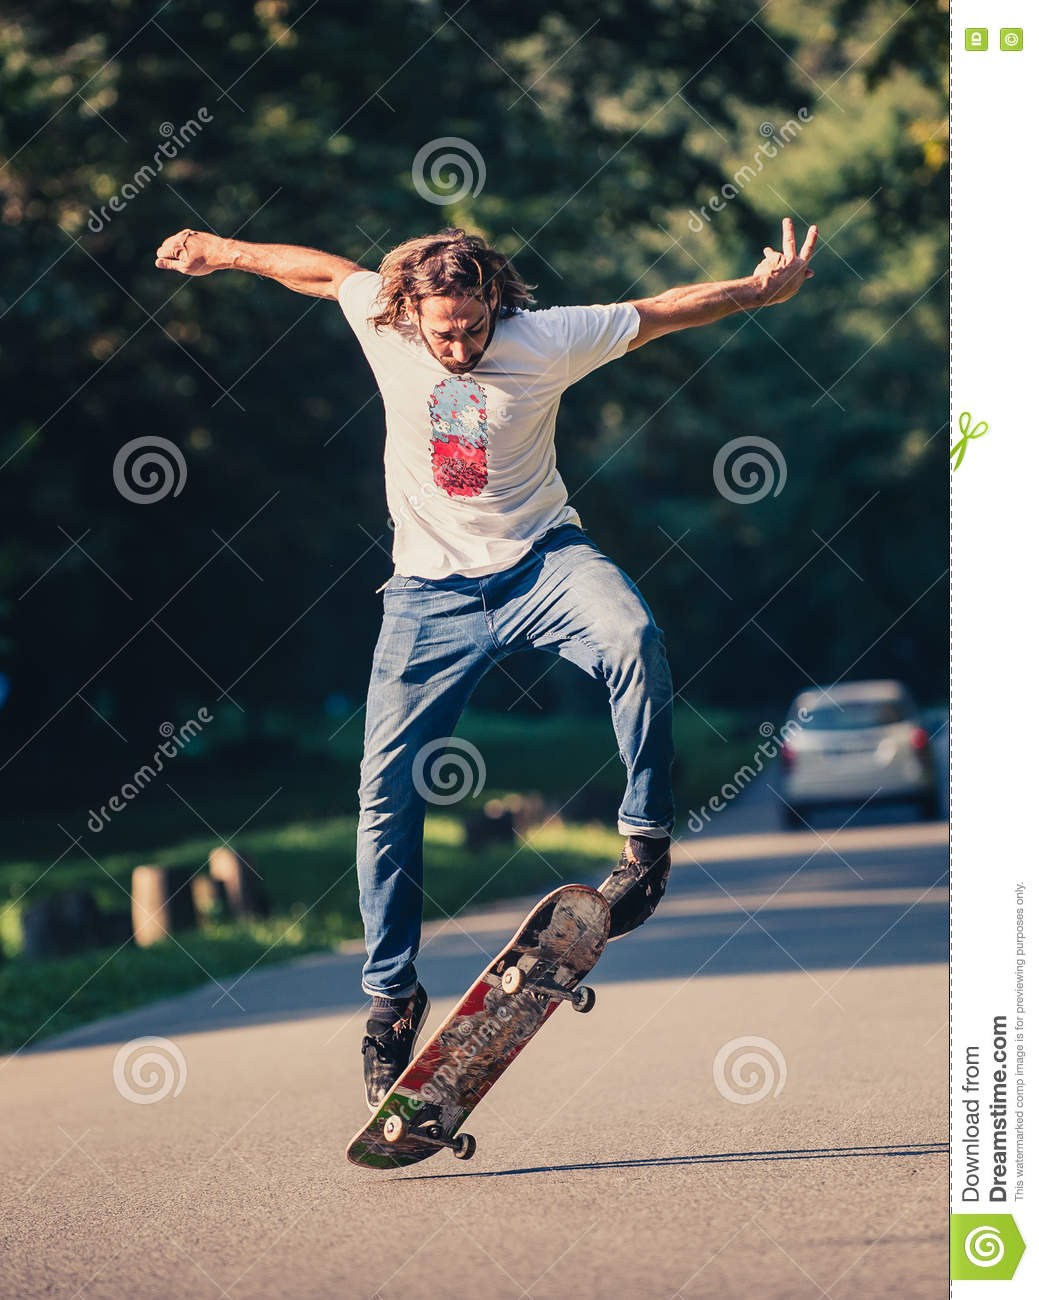 action shot of a skateboarder skating doing tricks and jumping